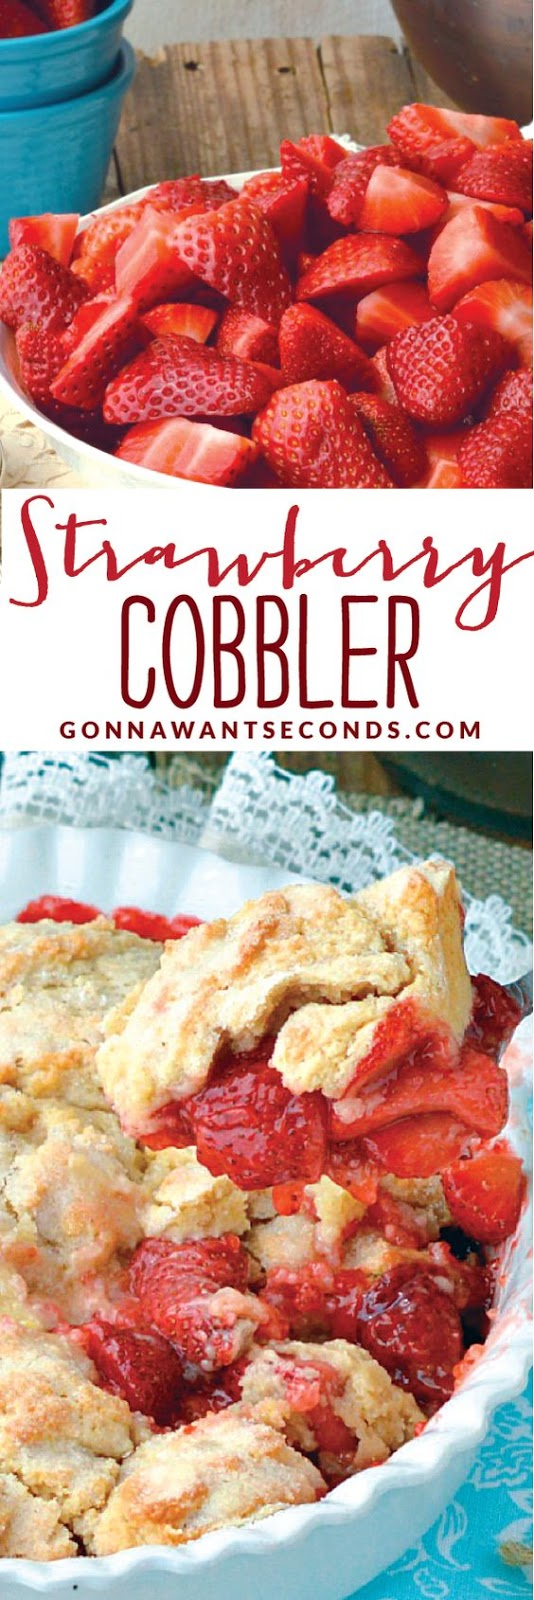 OLD-FASHIONED STRAWBERRY COBBLER RECIPE